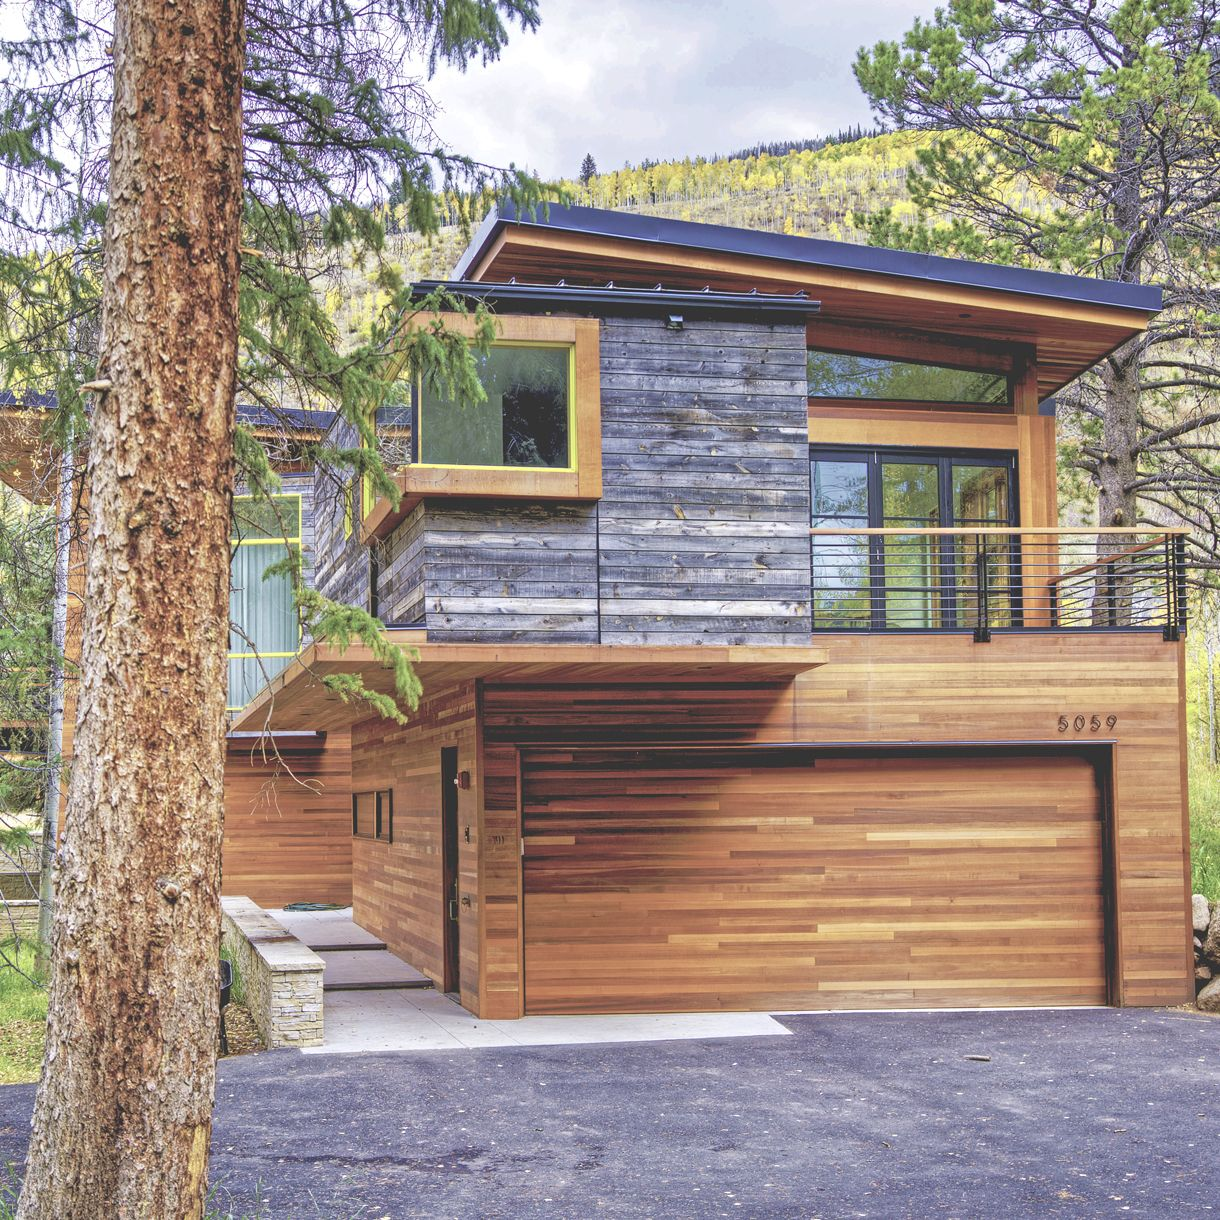 Modern Mountain House In Vail Co With Reclaimed Wood Exterior Siding Reclaimedwood Architecture Re Wood Siding Exterior Reclaimed Wood Siding Wood Siding